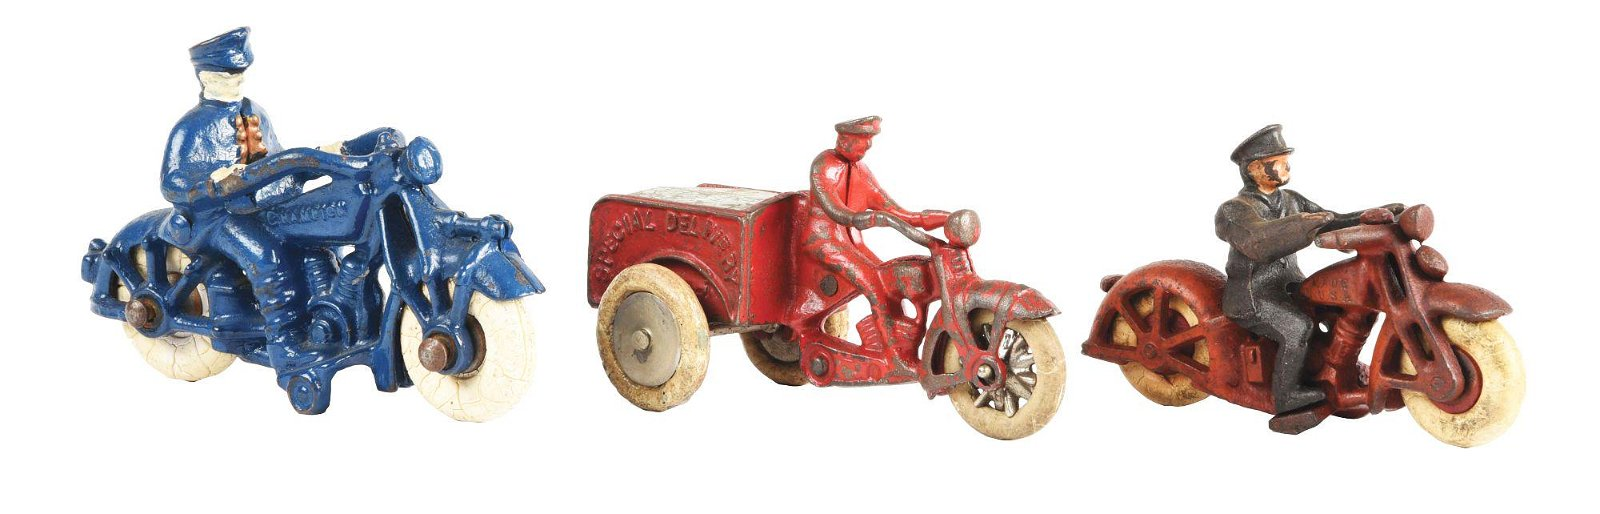 LOT OF 3: AMERICAN MADE CAST-IRON MOTORCYCLE TOYS.